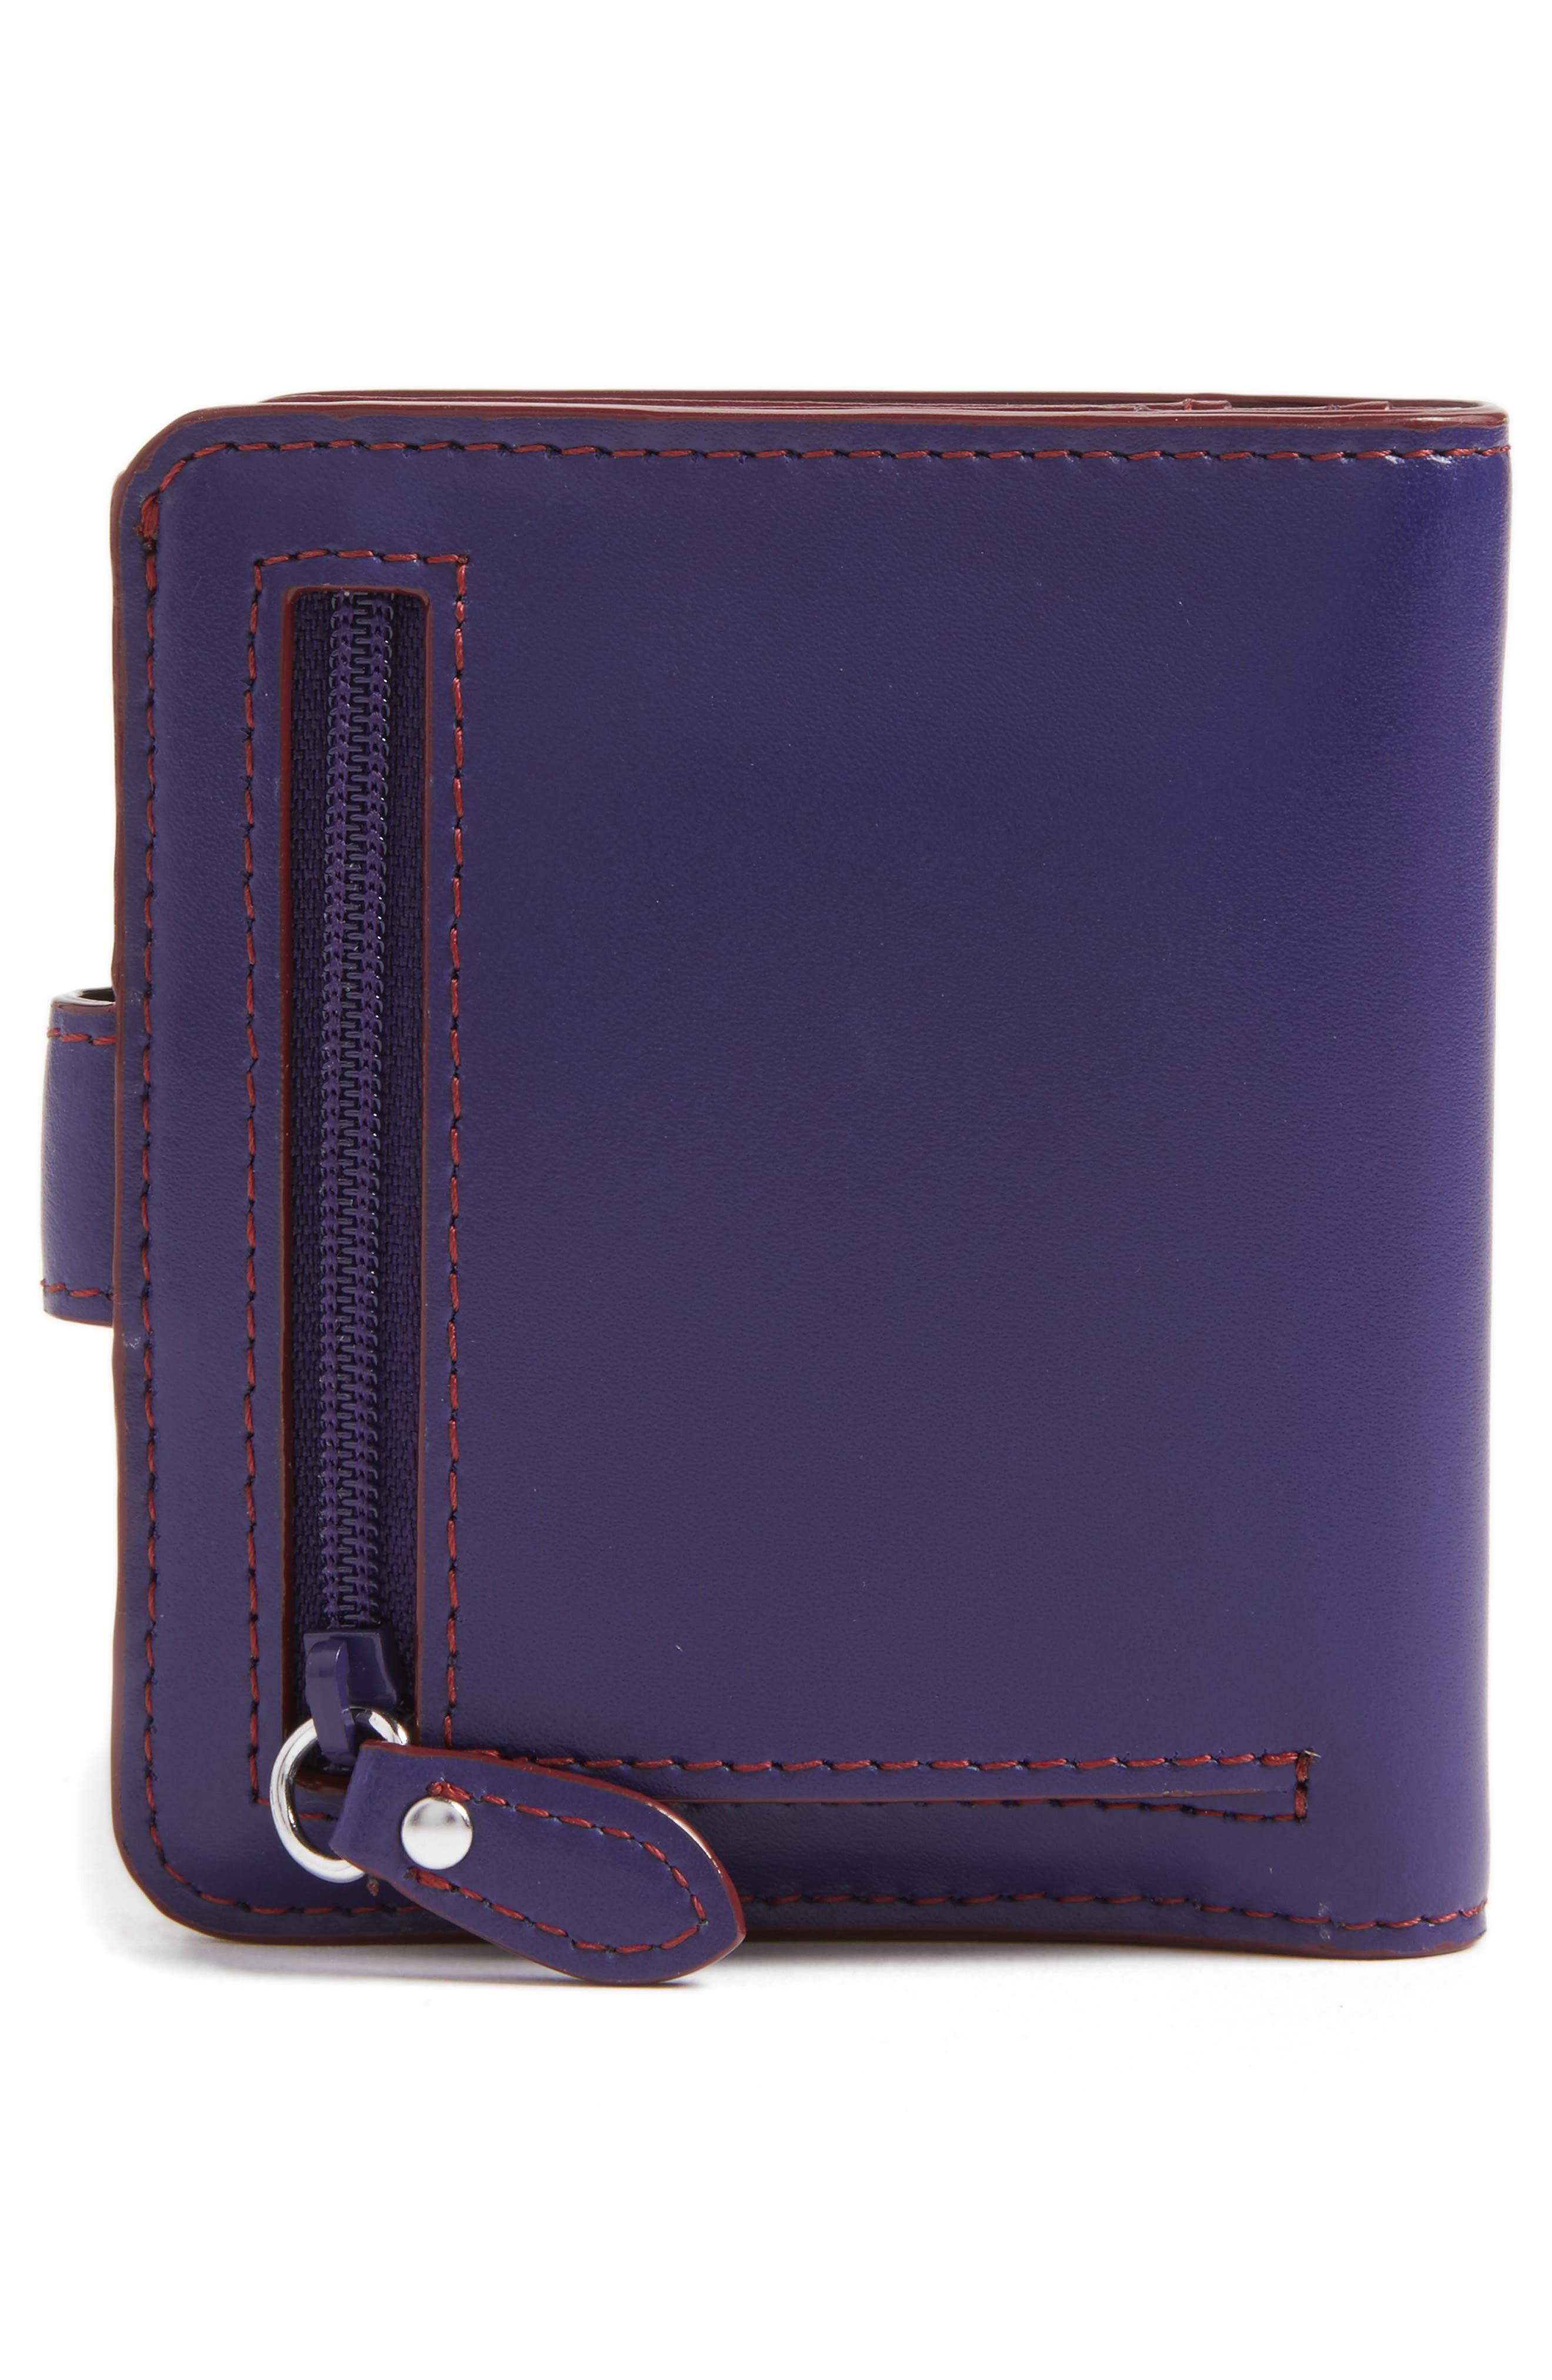 Lodis Petite Audrey RFID Leather Wallet,                             Alternate thumbnail 4, color,                             Midnight/ Chianti